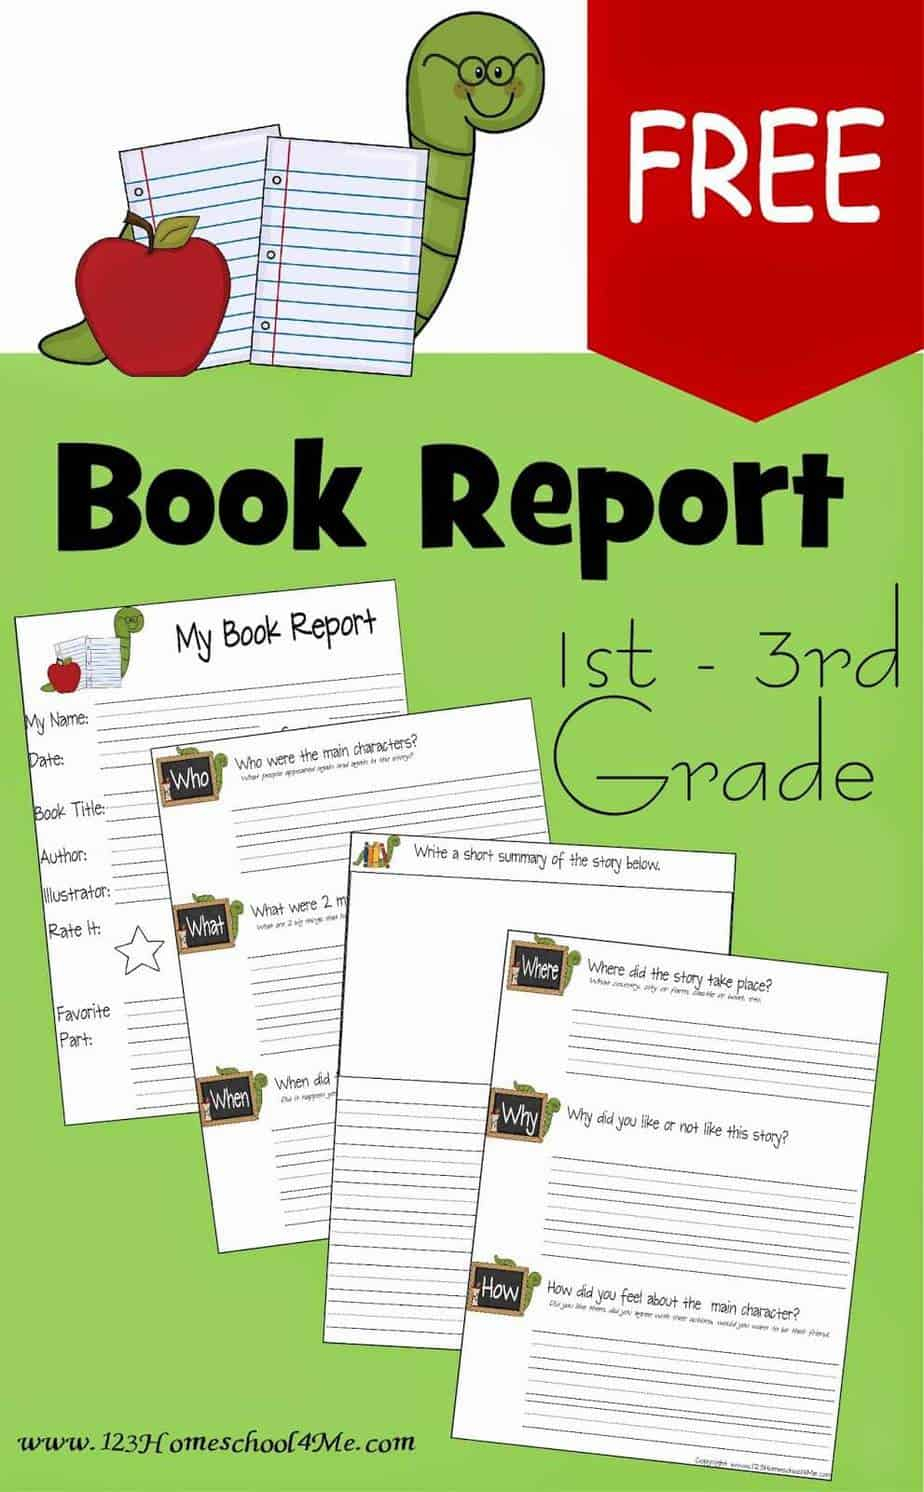 Free Book Report Template | 123 Homeschool 4 Me - Free Printable Book Report Forms